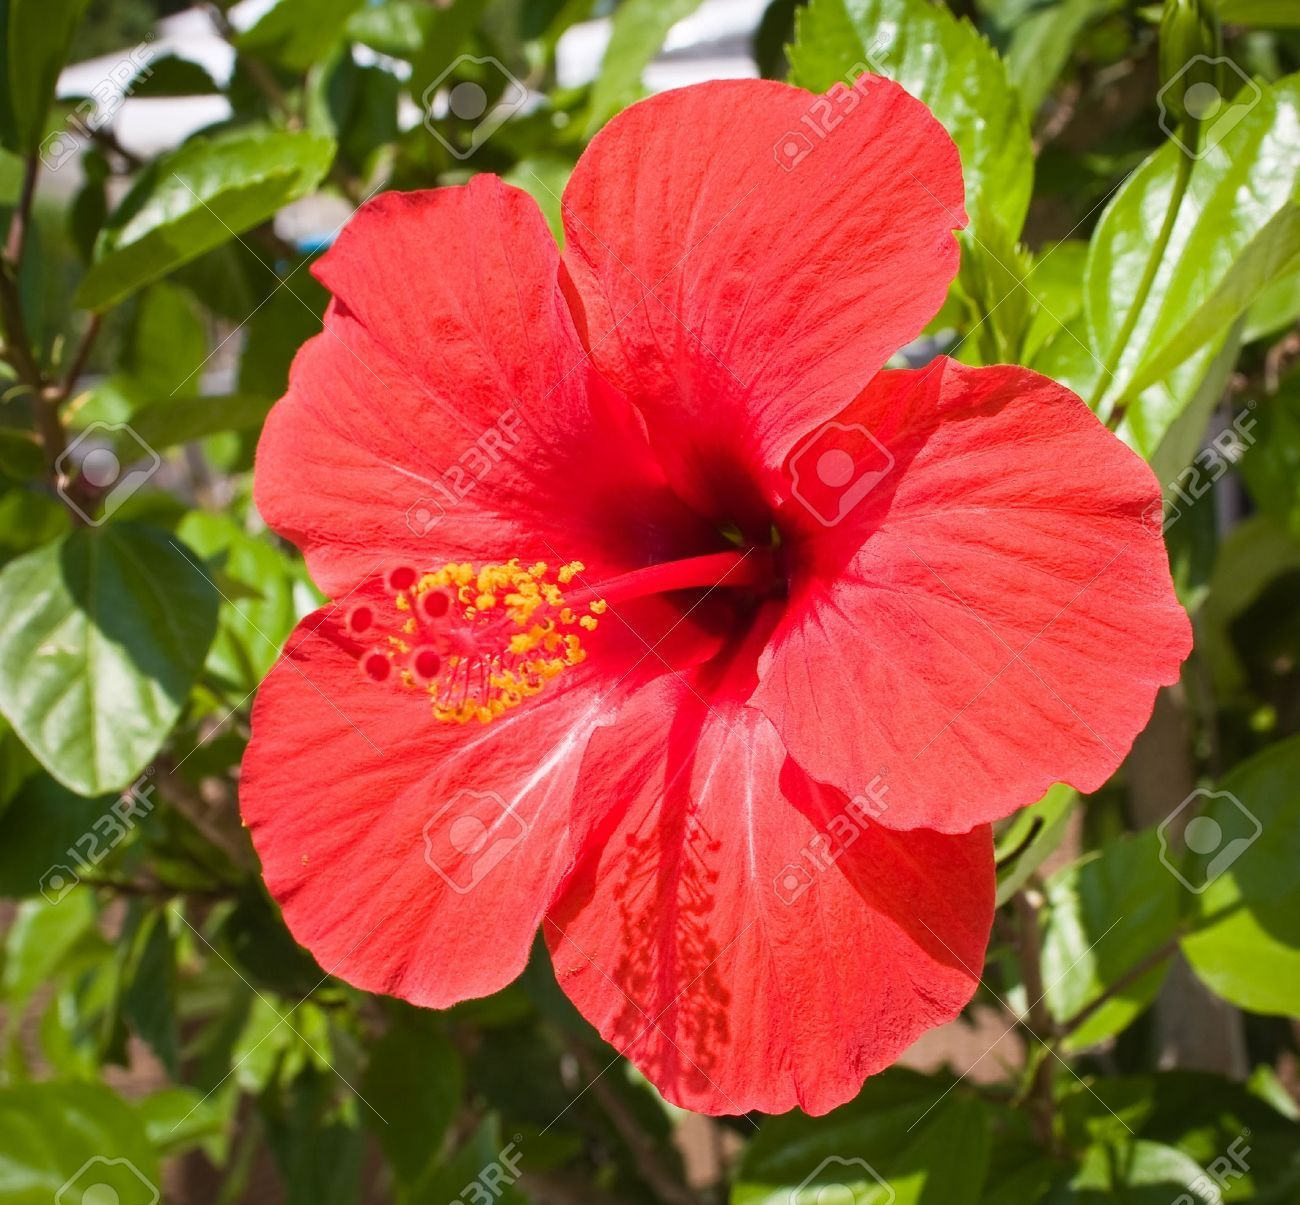 Awesome Image Of Red Hibiscus Flower And Review in 2020